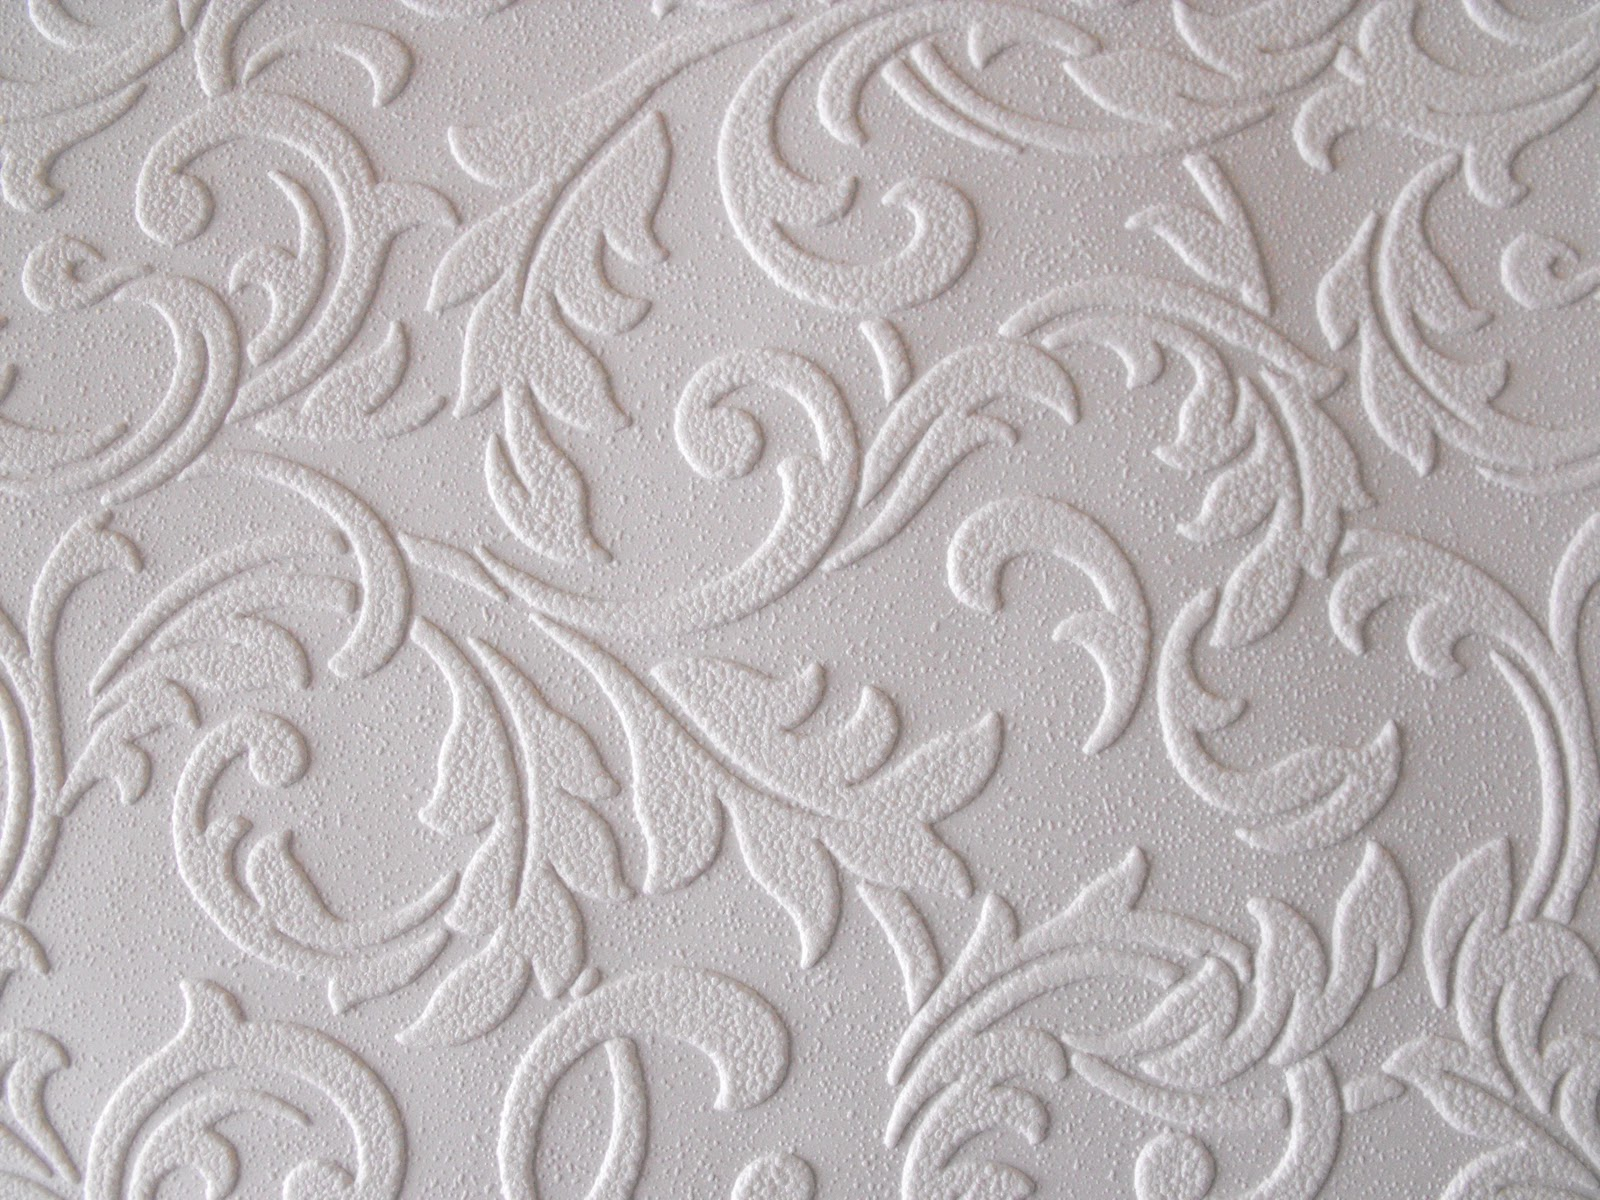 Free wallpaper images textured vinyl wallpaper for White washable wallpaper